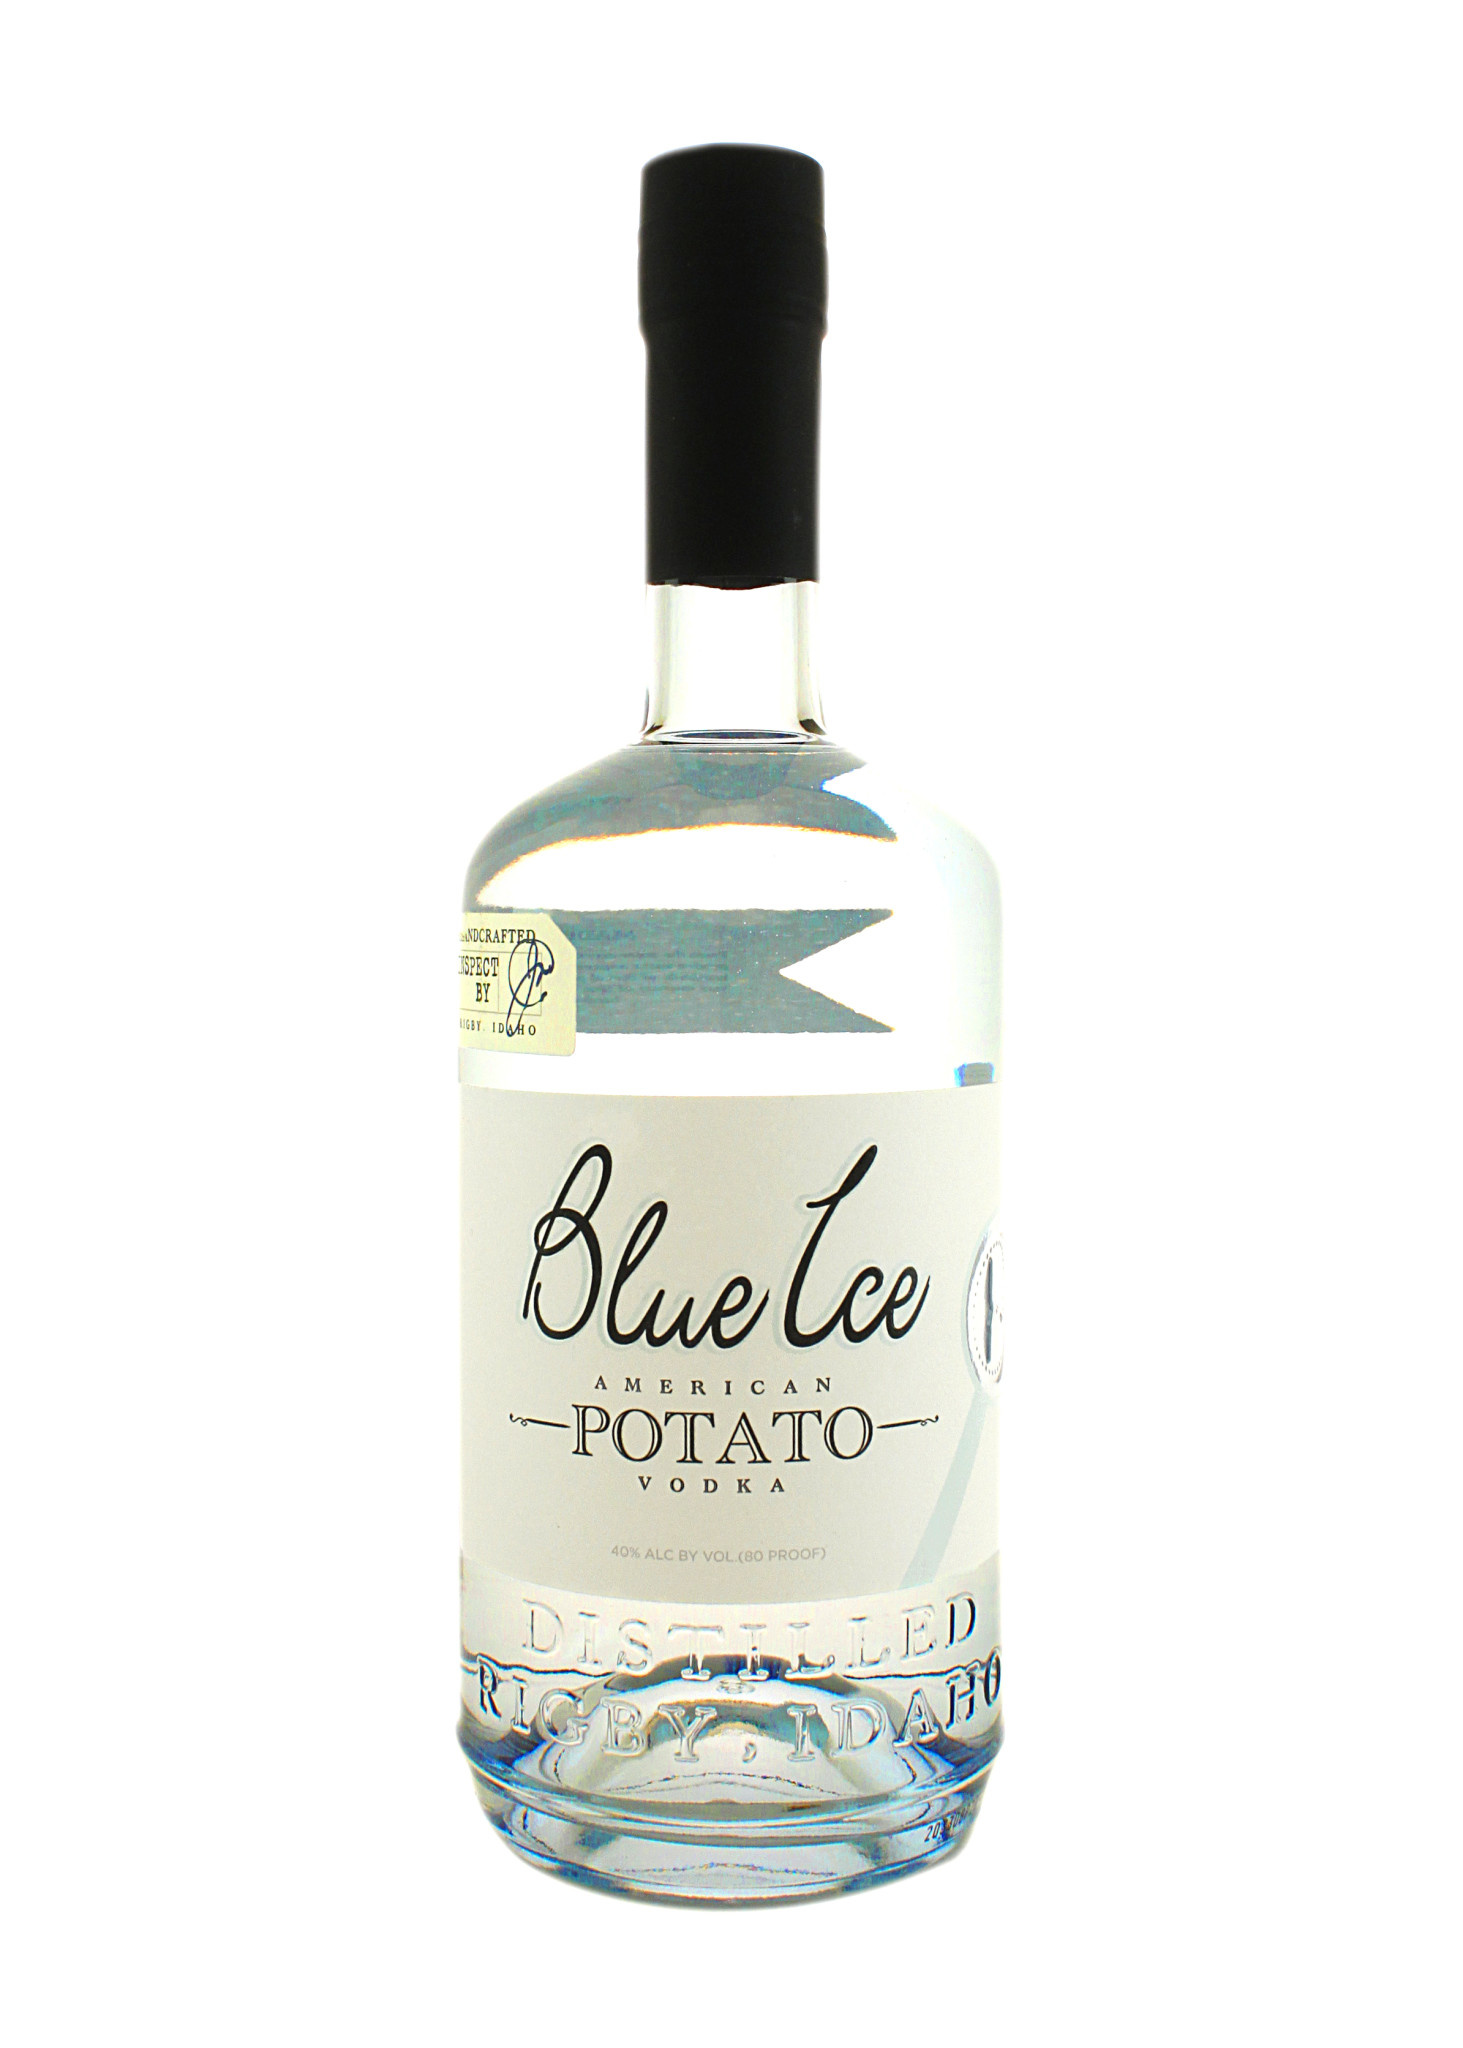 Blue Ice American Potato Vodka, 750ml